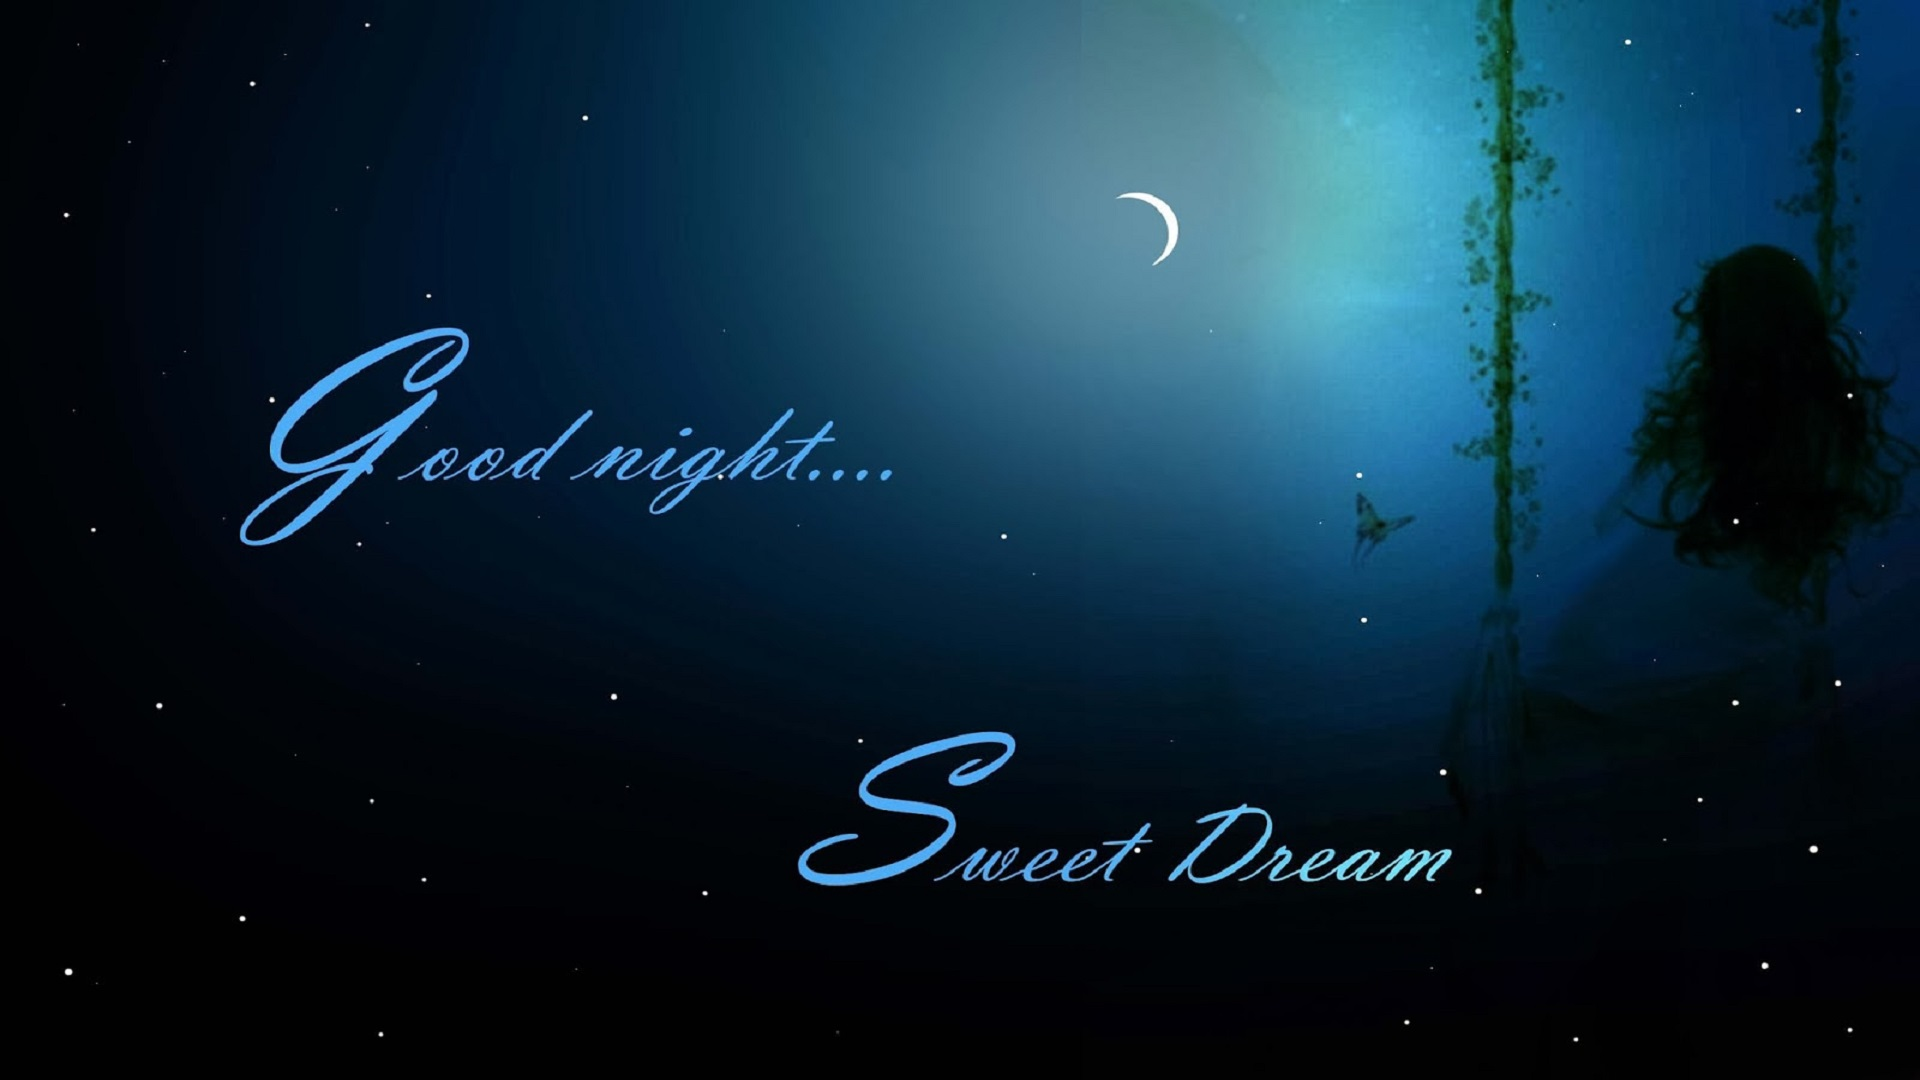 good-night-wallpaper-free-download-hd-for-dekstop - hd wallpaper